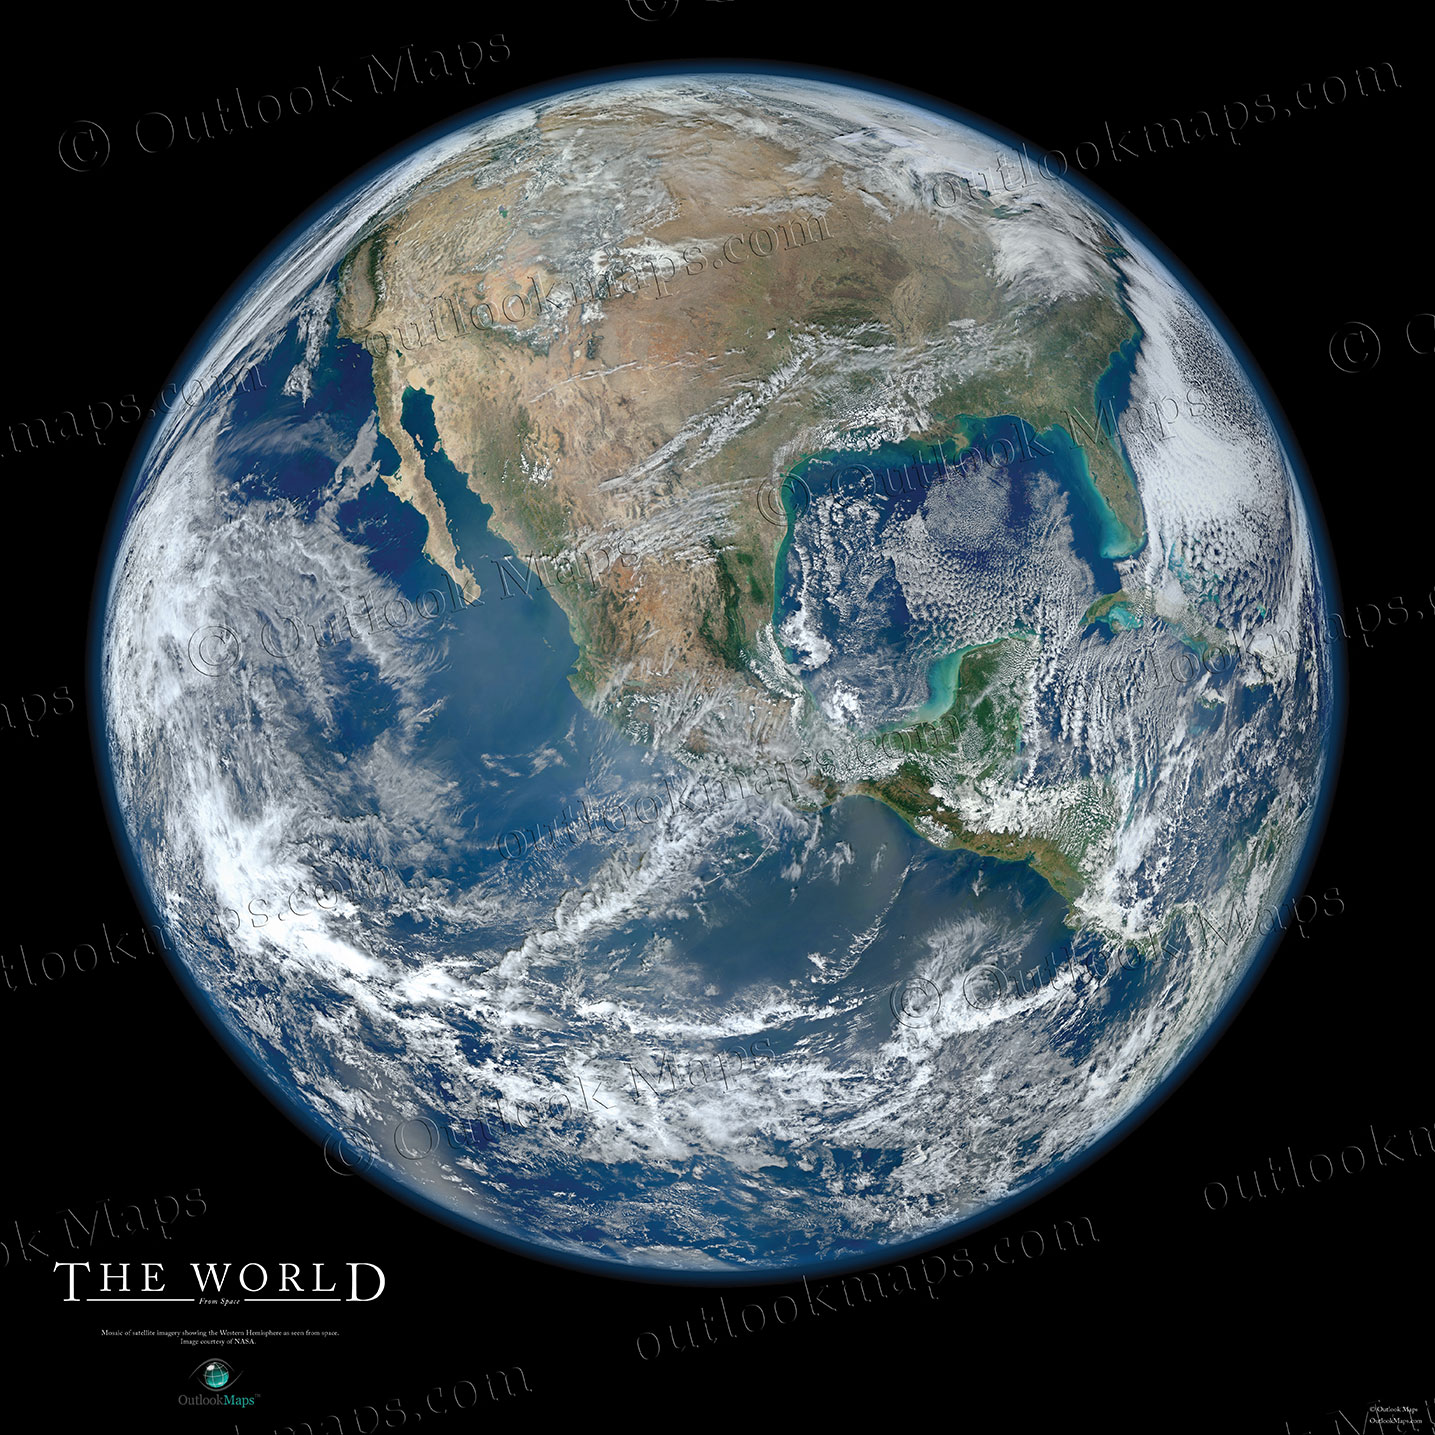 Marble Poster of Planet Earth